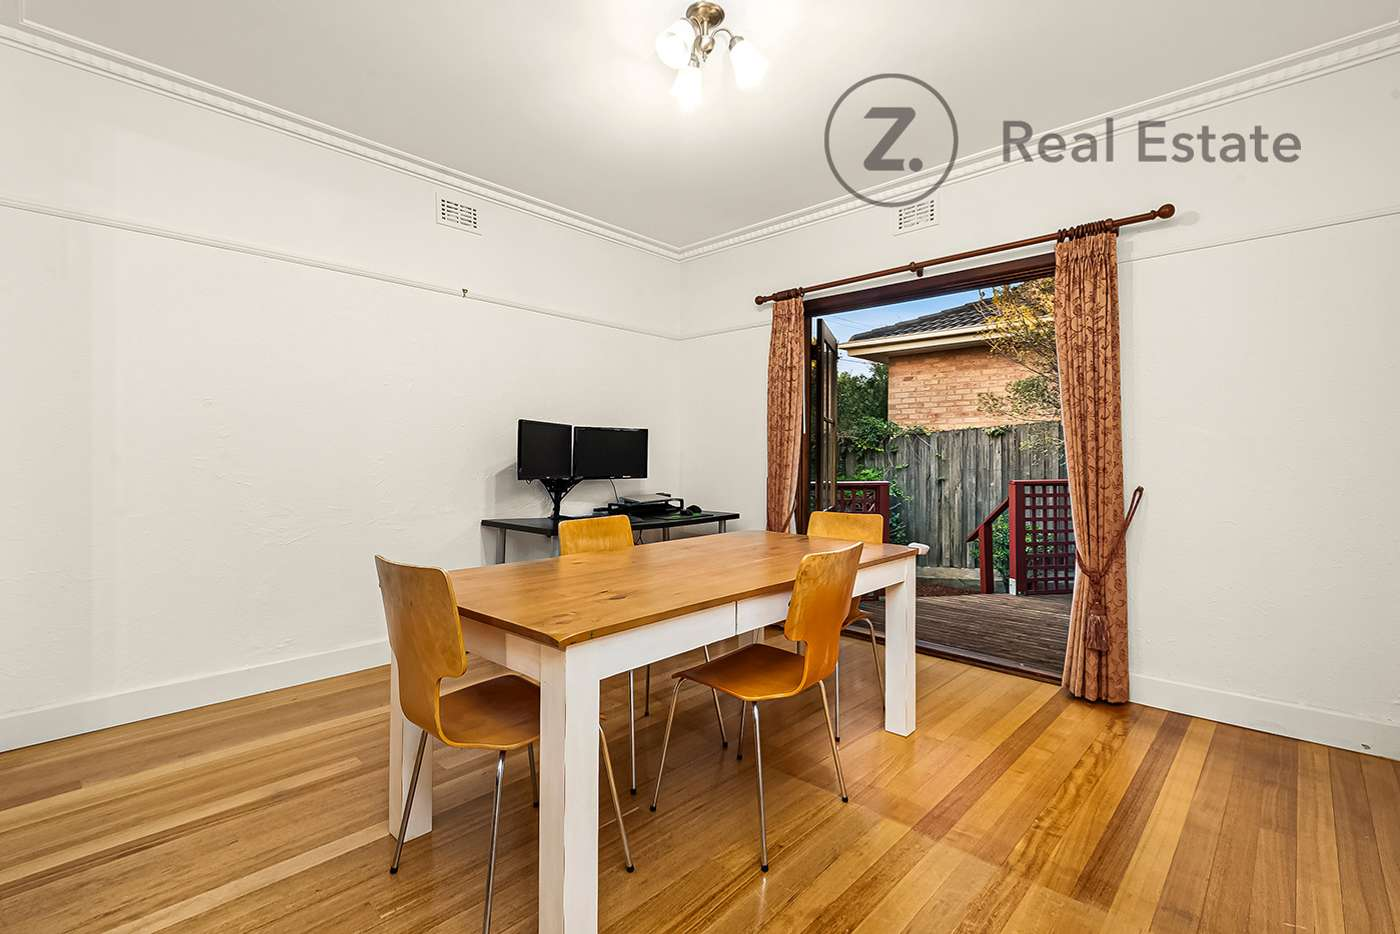 Fifth view of Homely unit listing, 1/1 Lehem Avenue, Oakleigh South VIC 3167